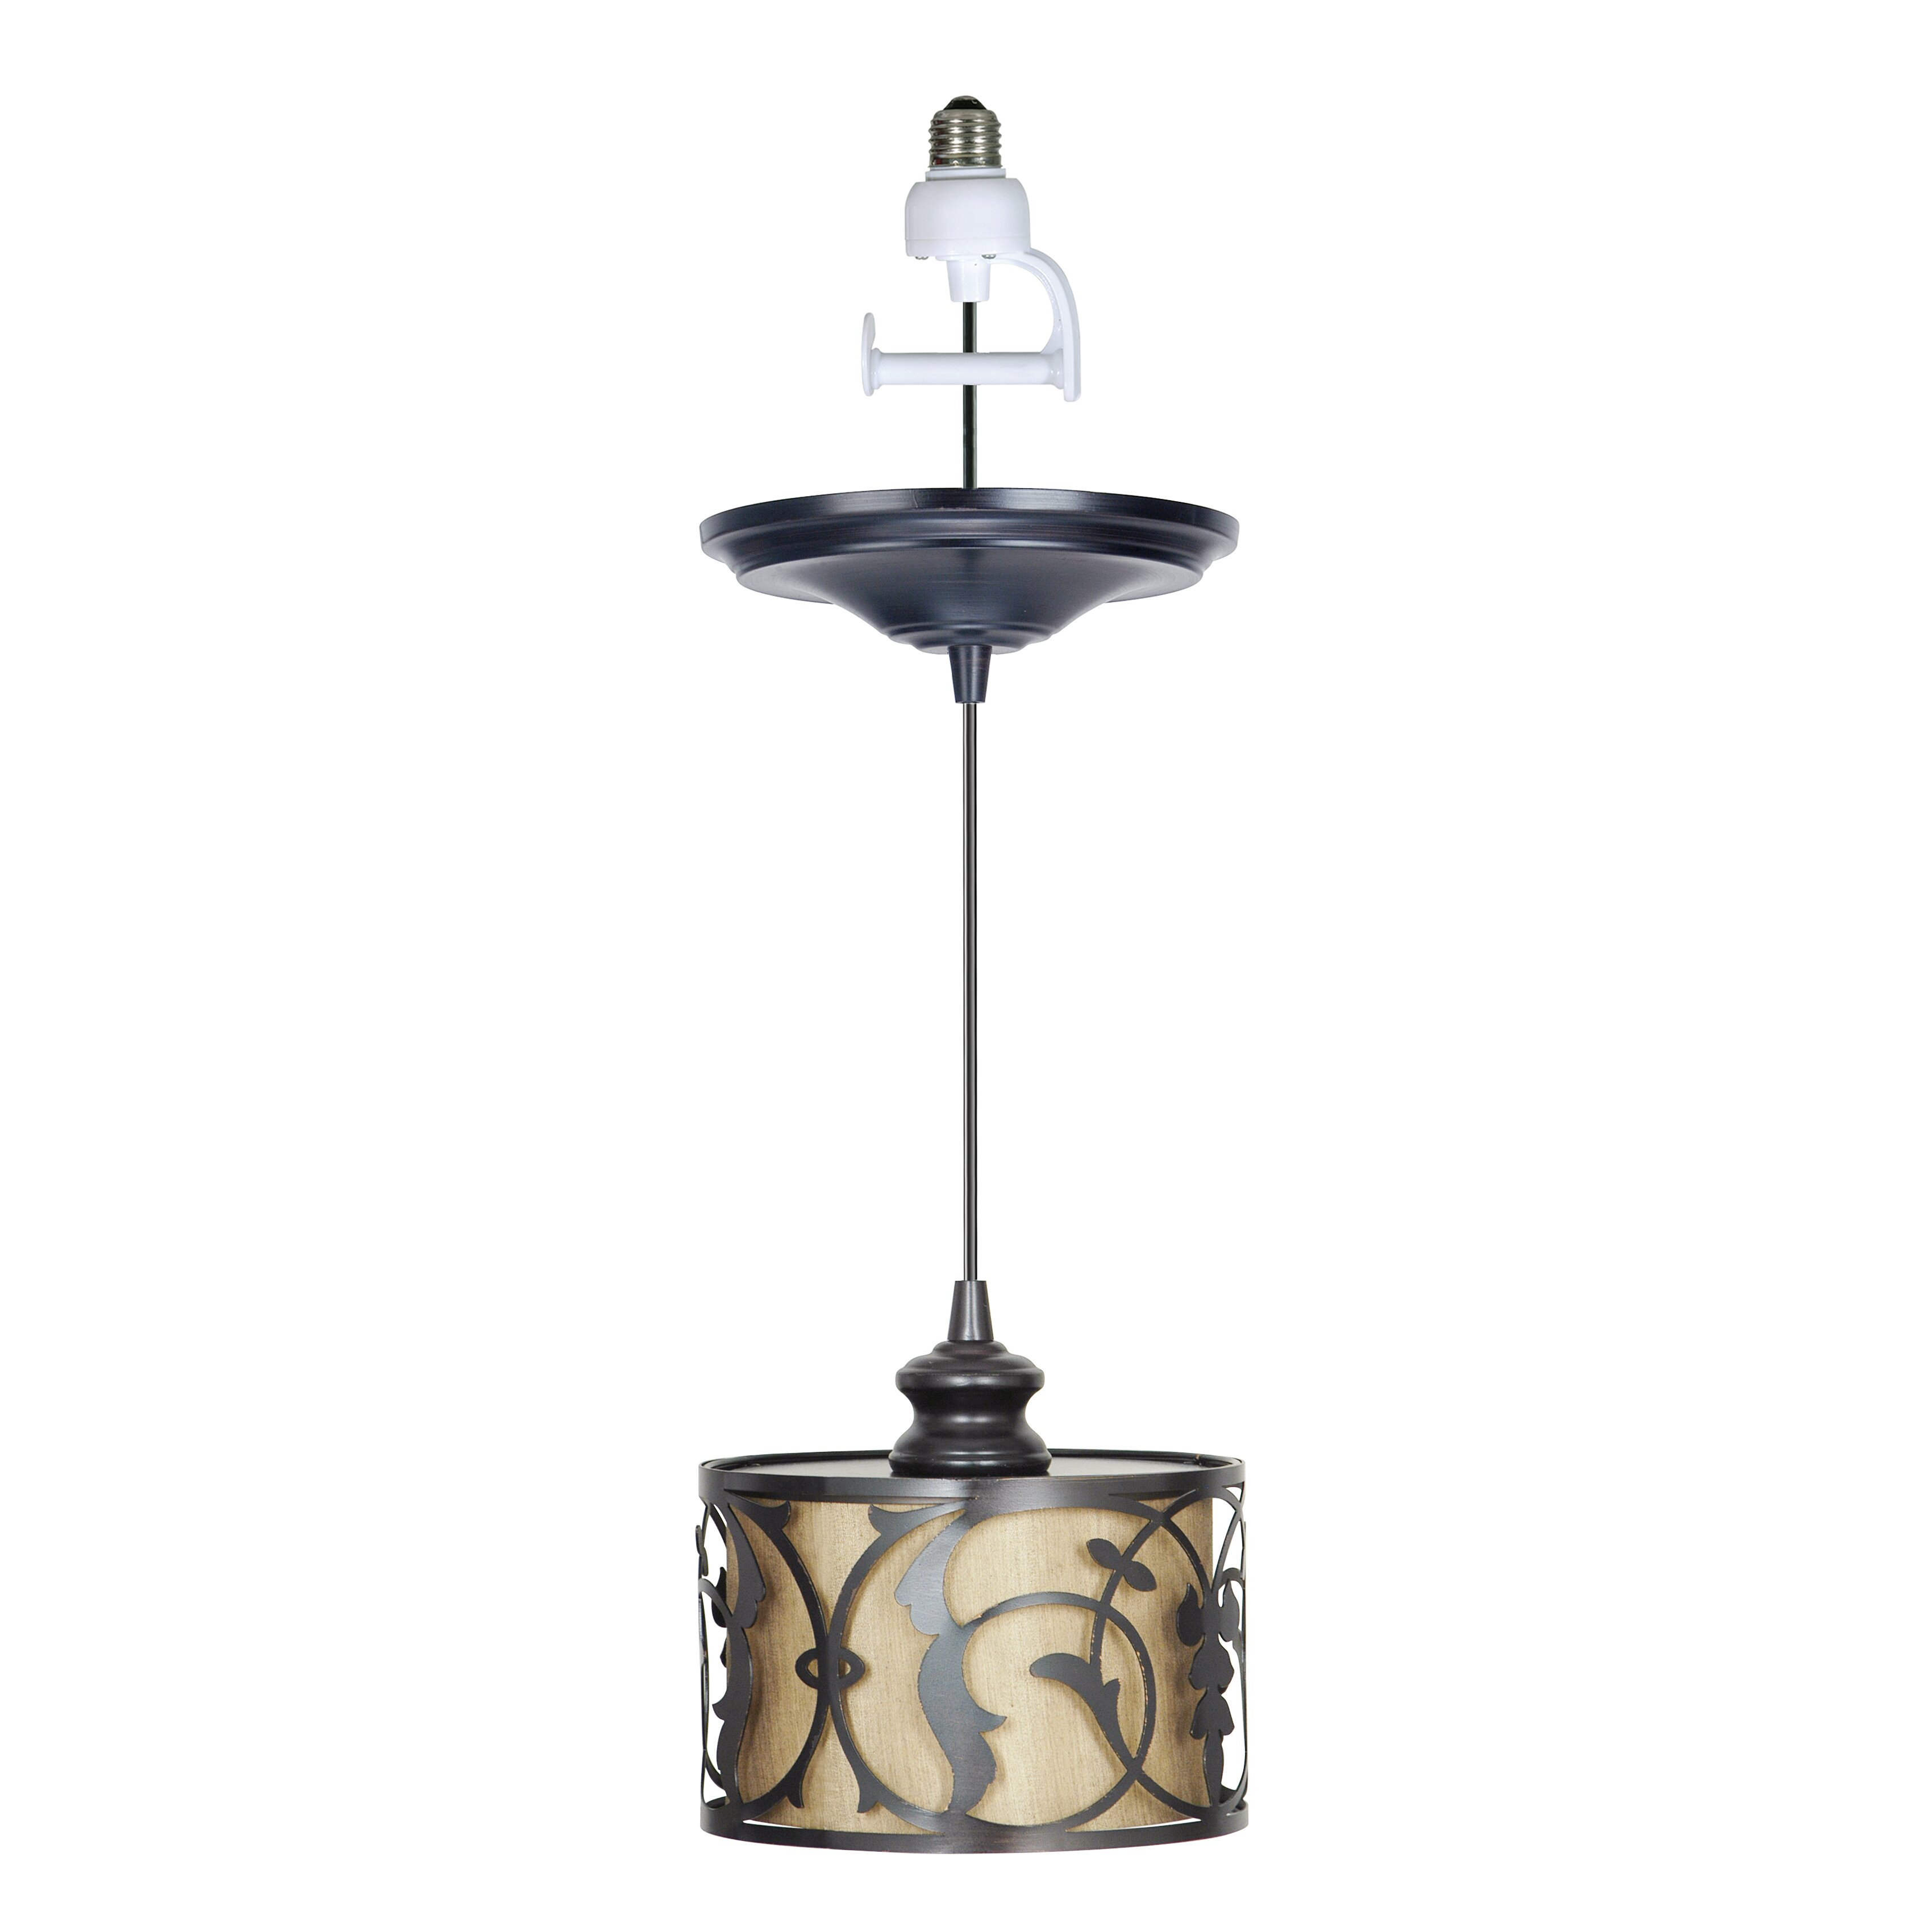 Pendant lights for recessed cans : Recessed light pendant worth home products pbn instant